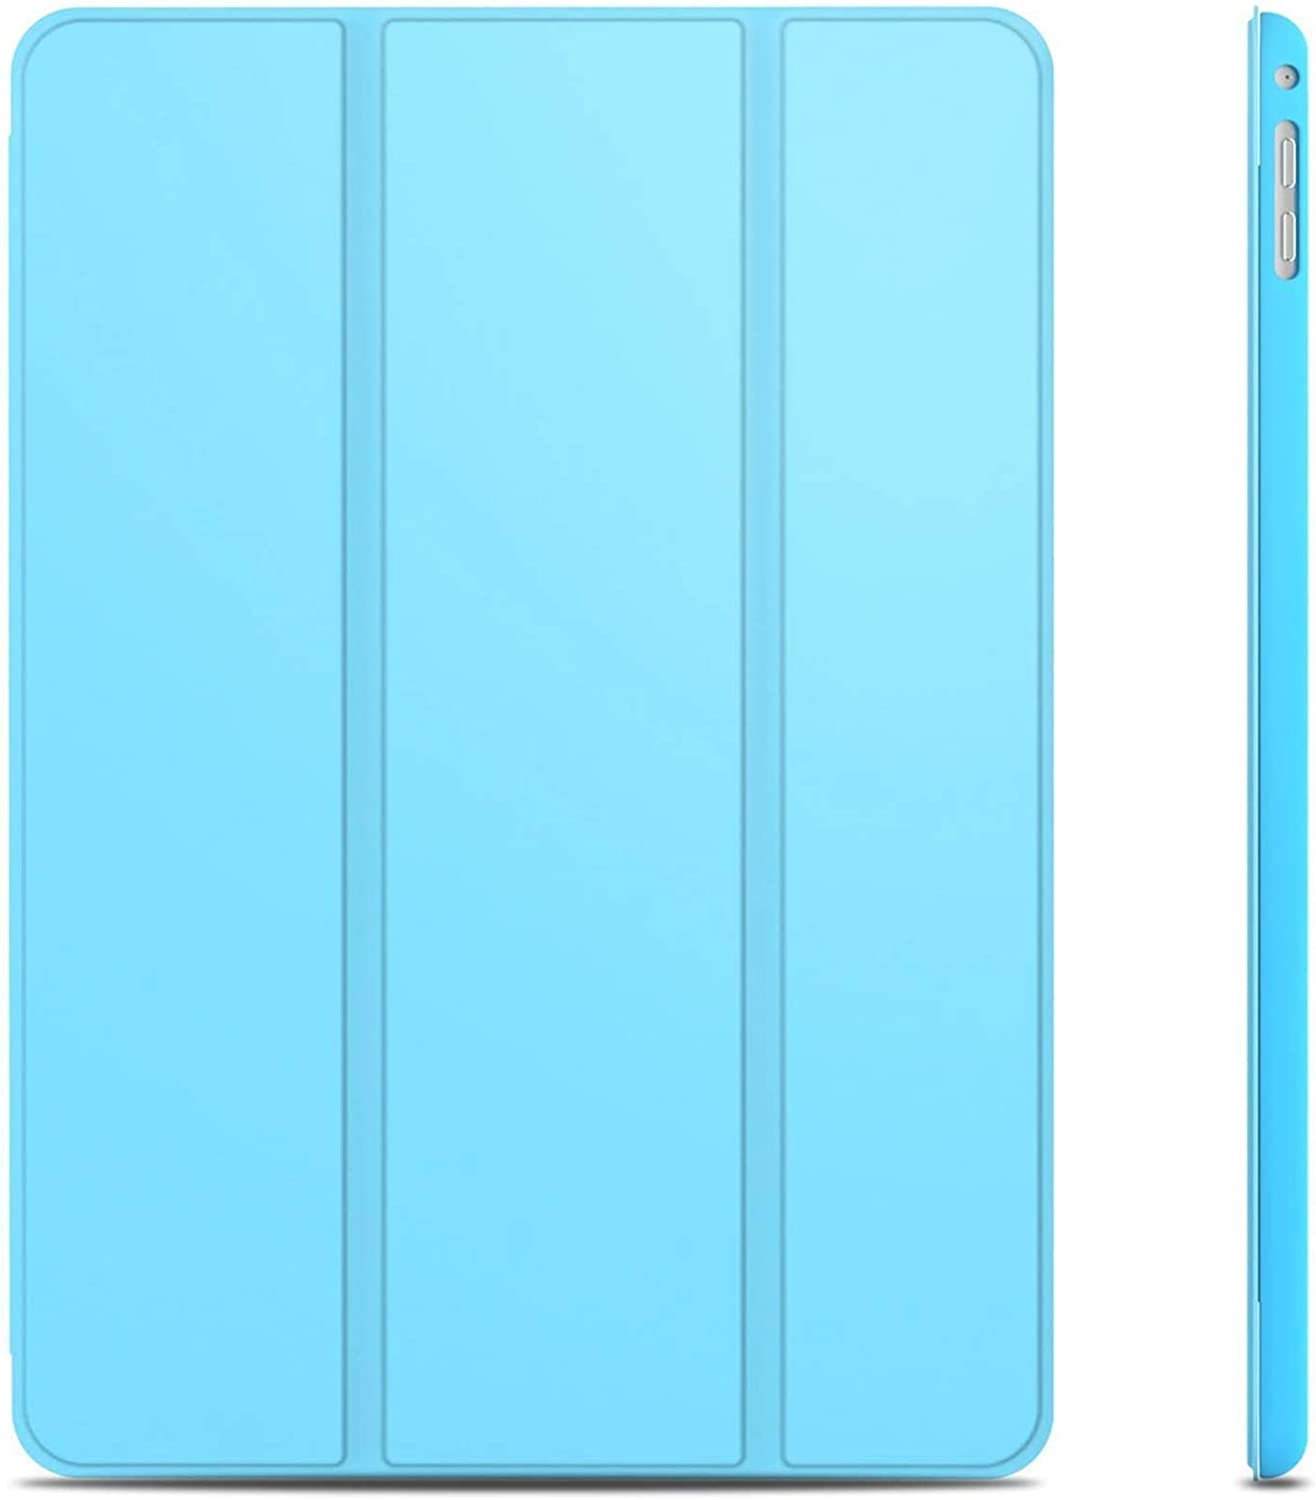 JETech Case for iPad Air 2 (Not for iPad Air 1st Edition), Smart Cover Auto Wake/Sleep, Blue